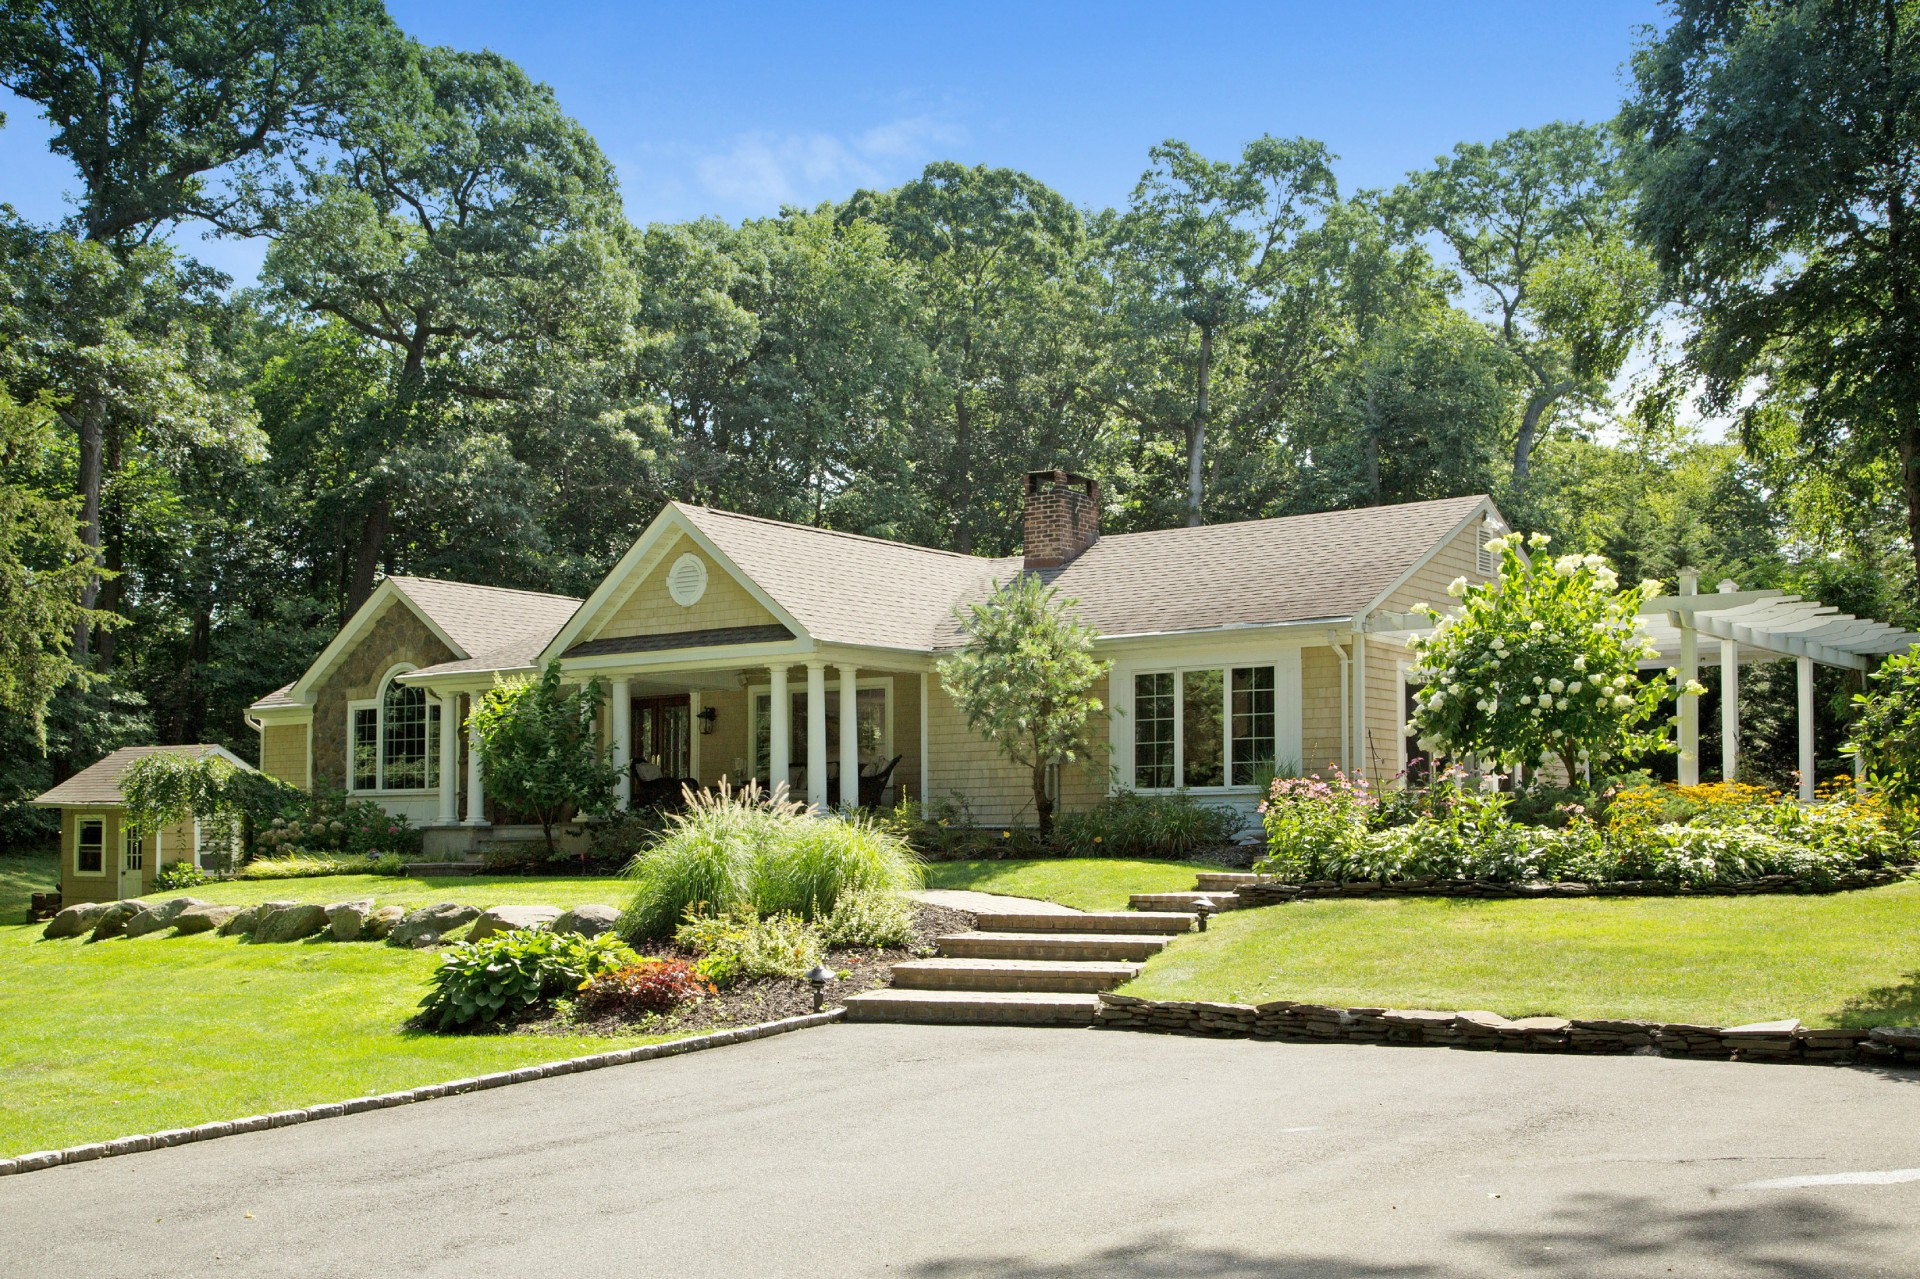 Single Family Home for Sale at Exp Ranch 27 Crosby Pl Cold Spring Harbor, New York, 11724 United States